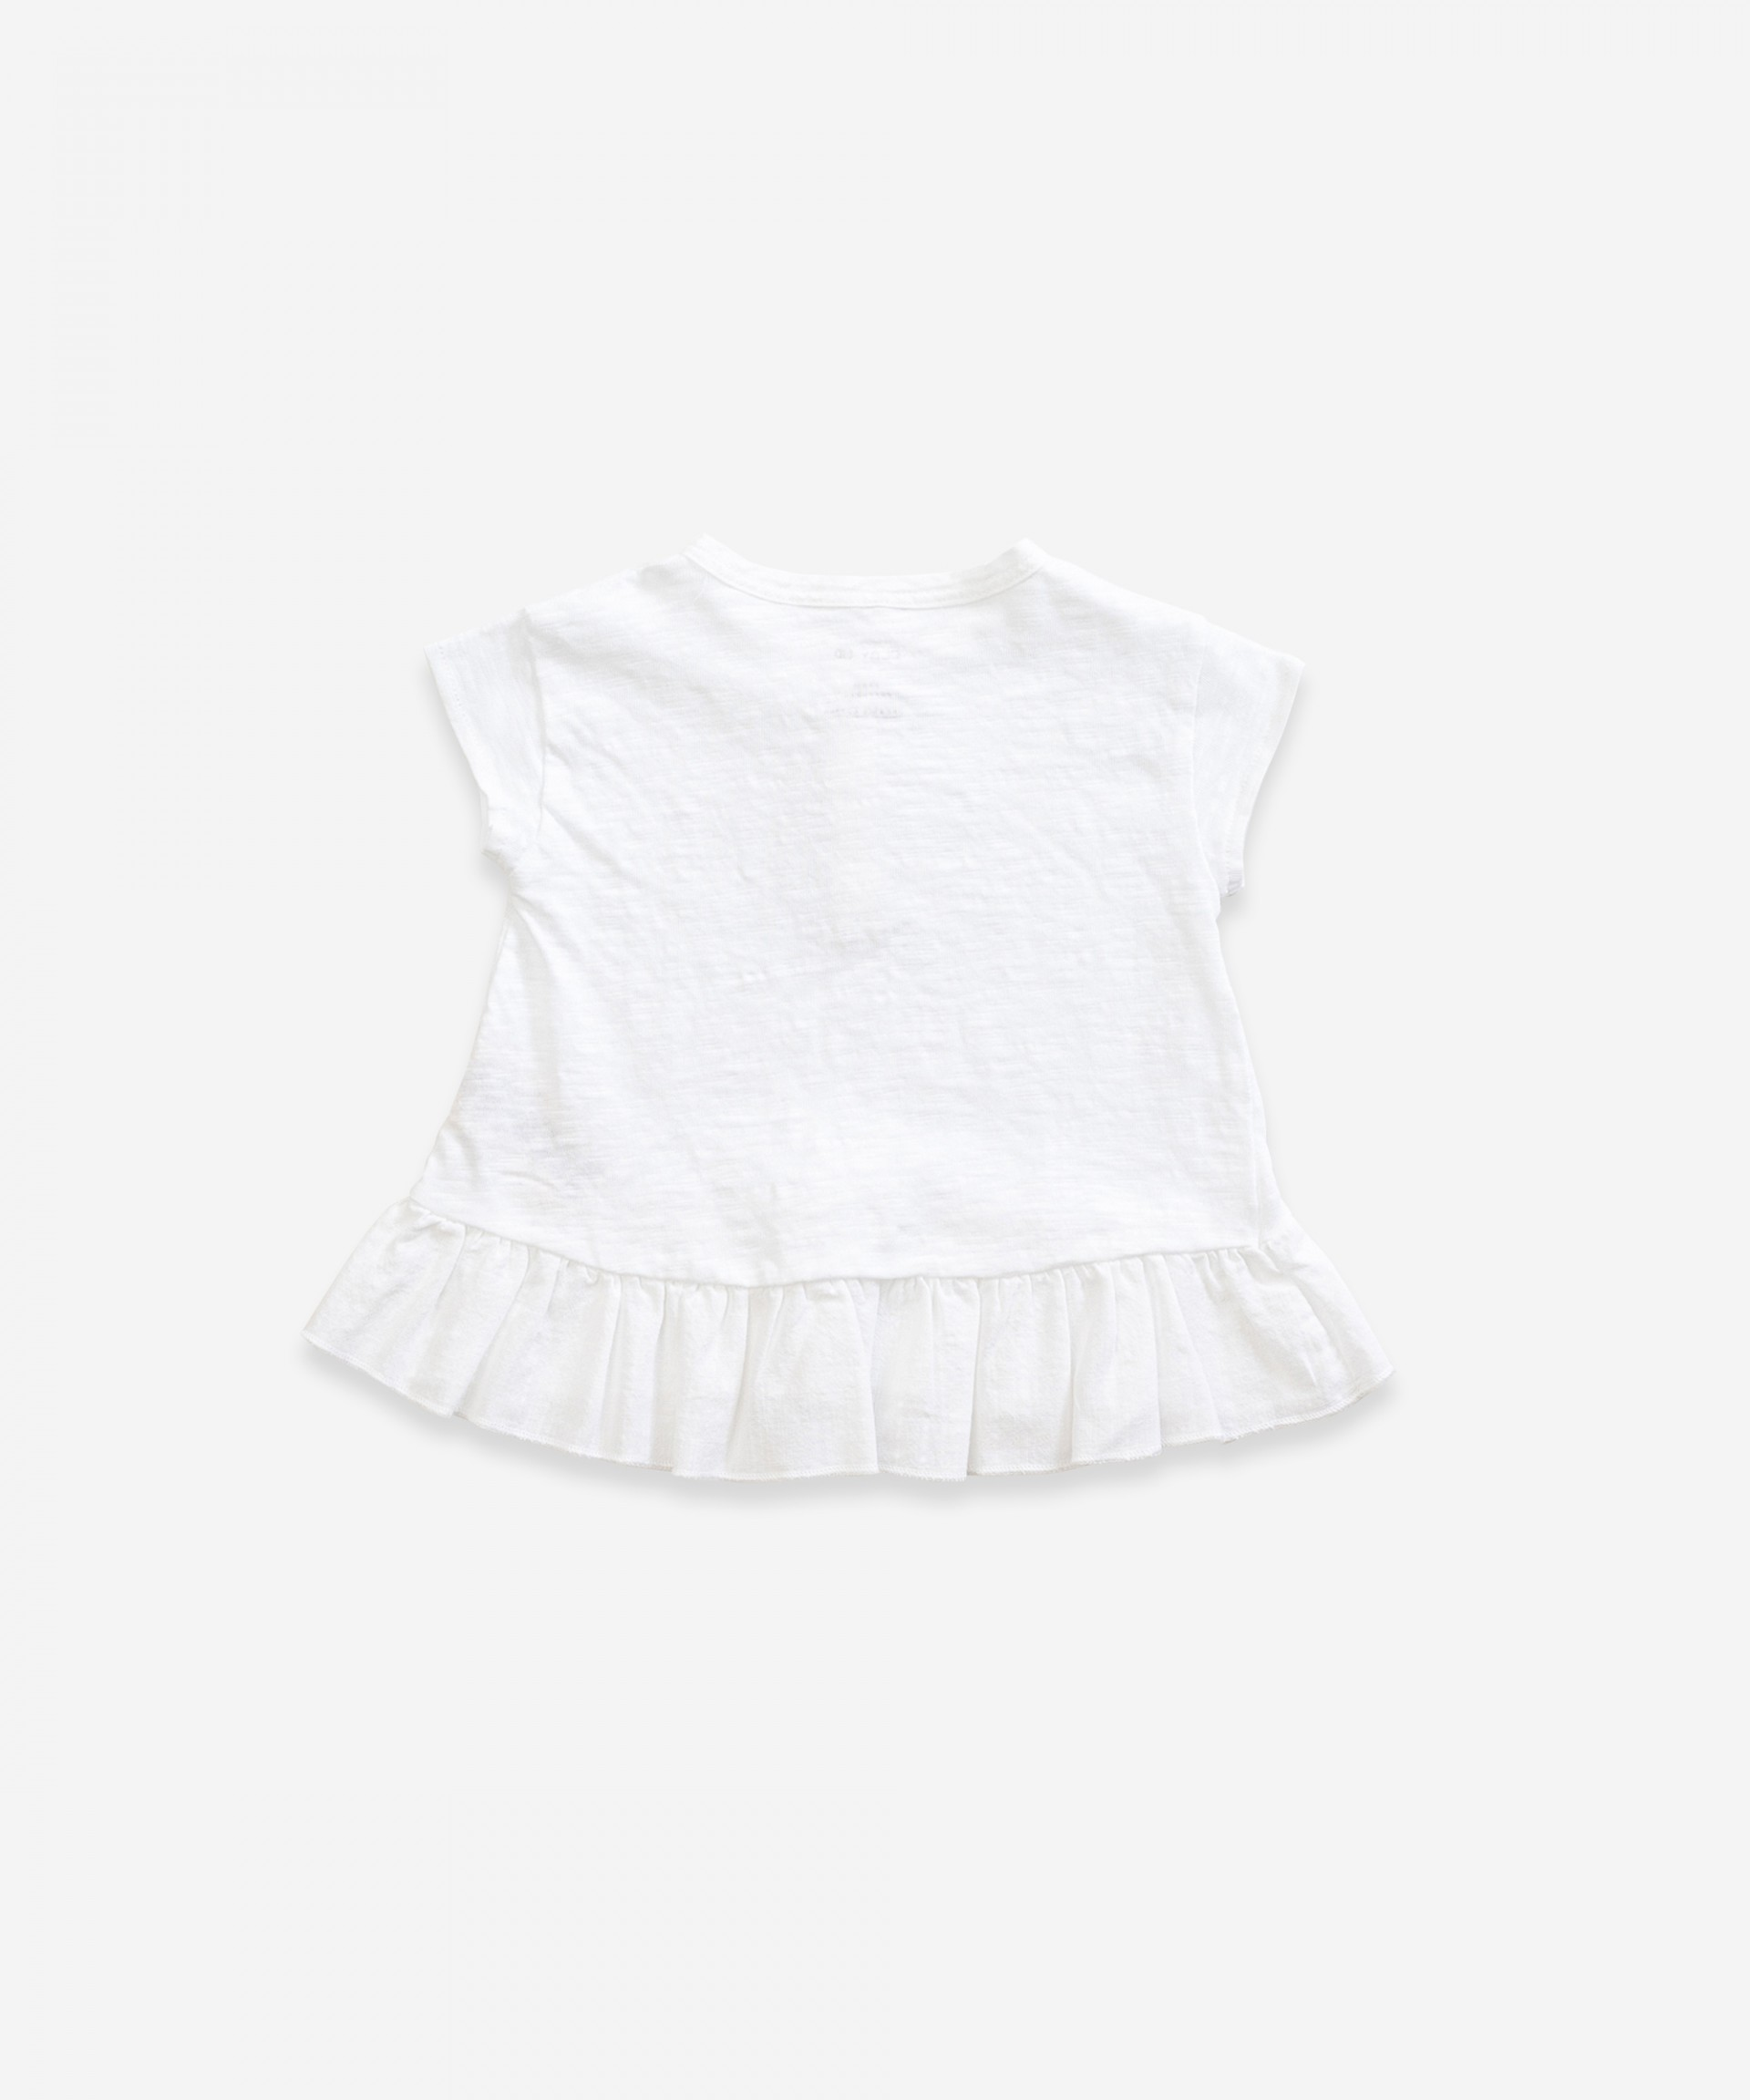 T-shirt with frill in organic cotton | Weaving | Weaving